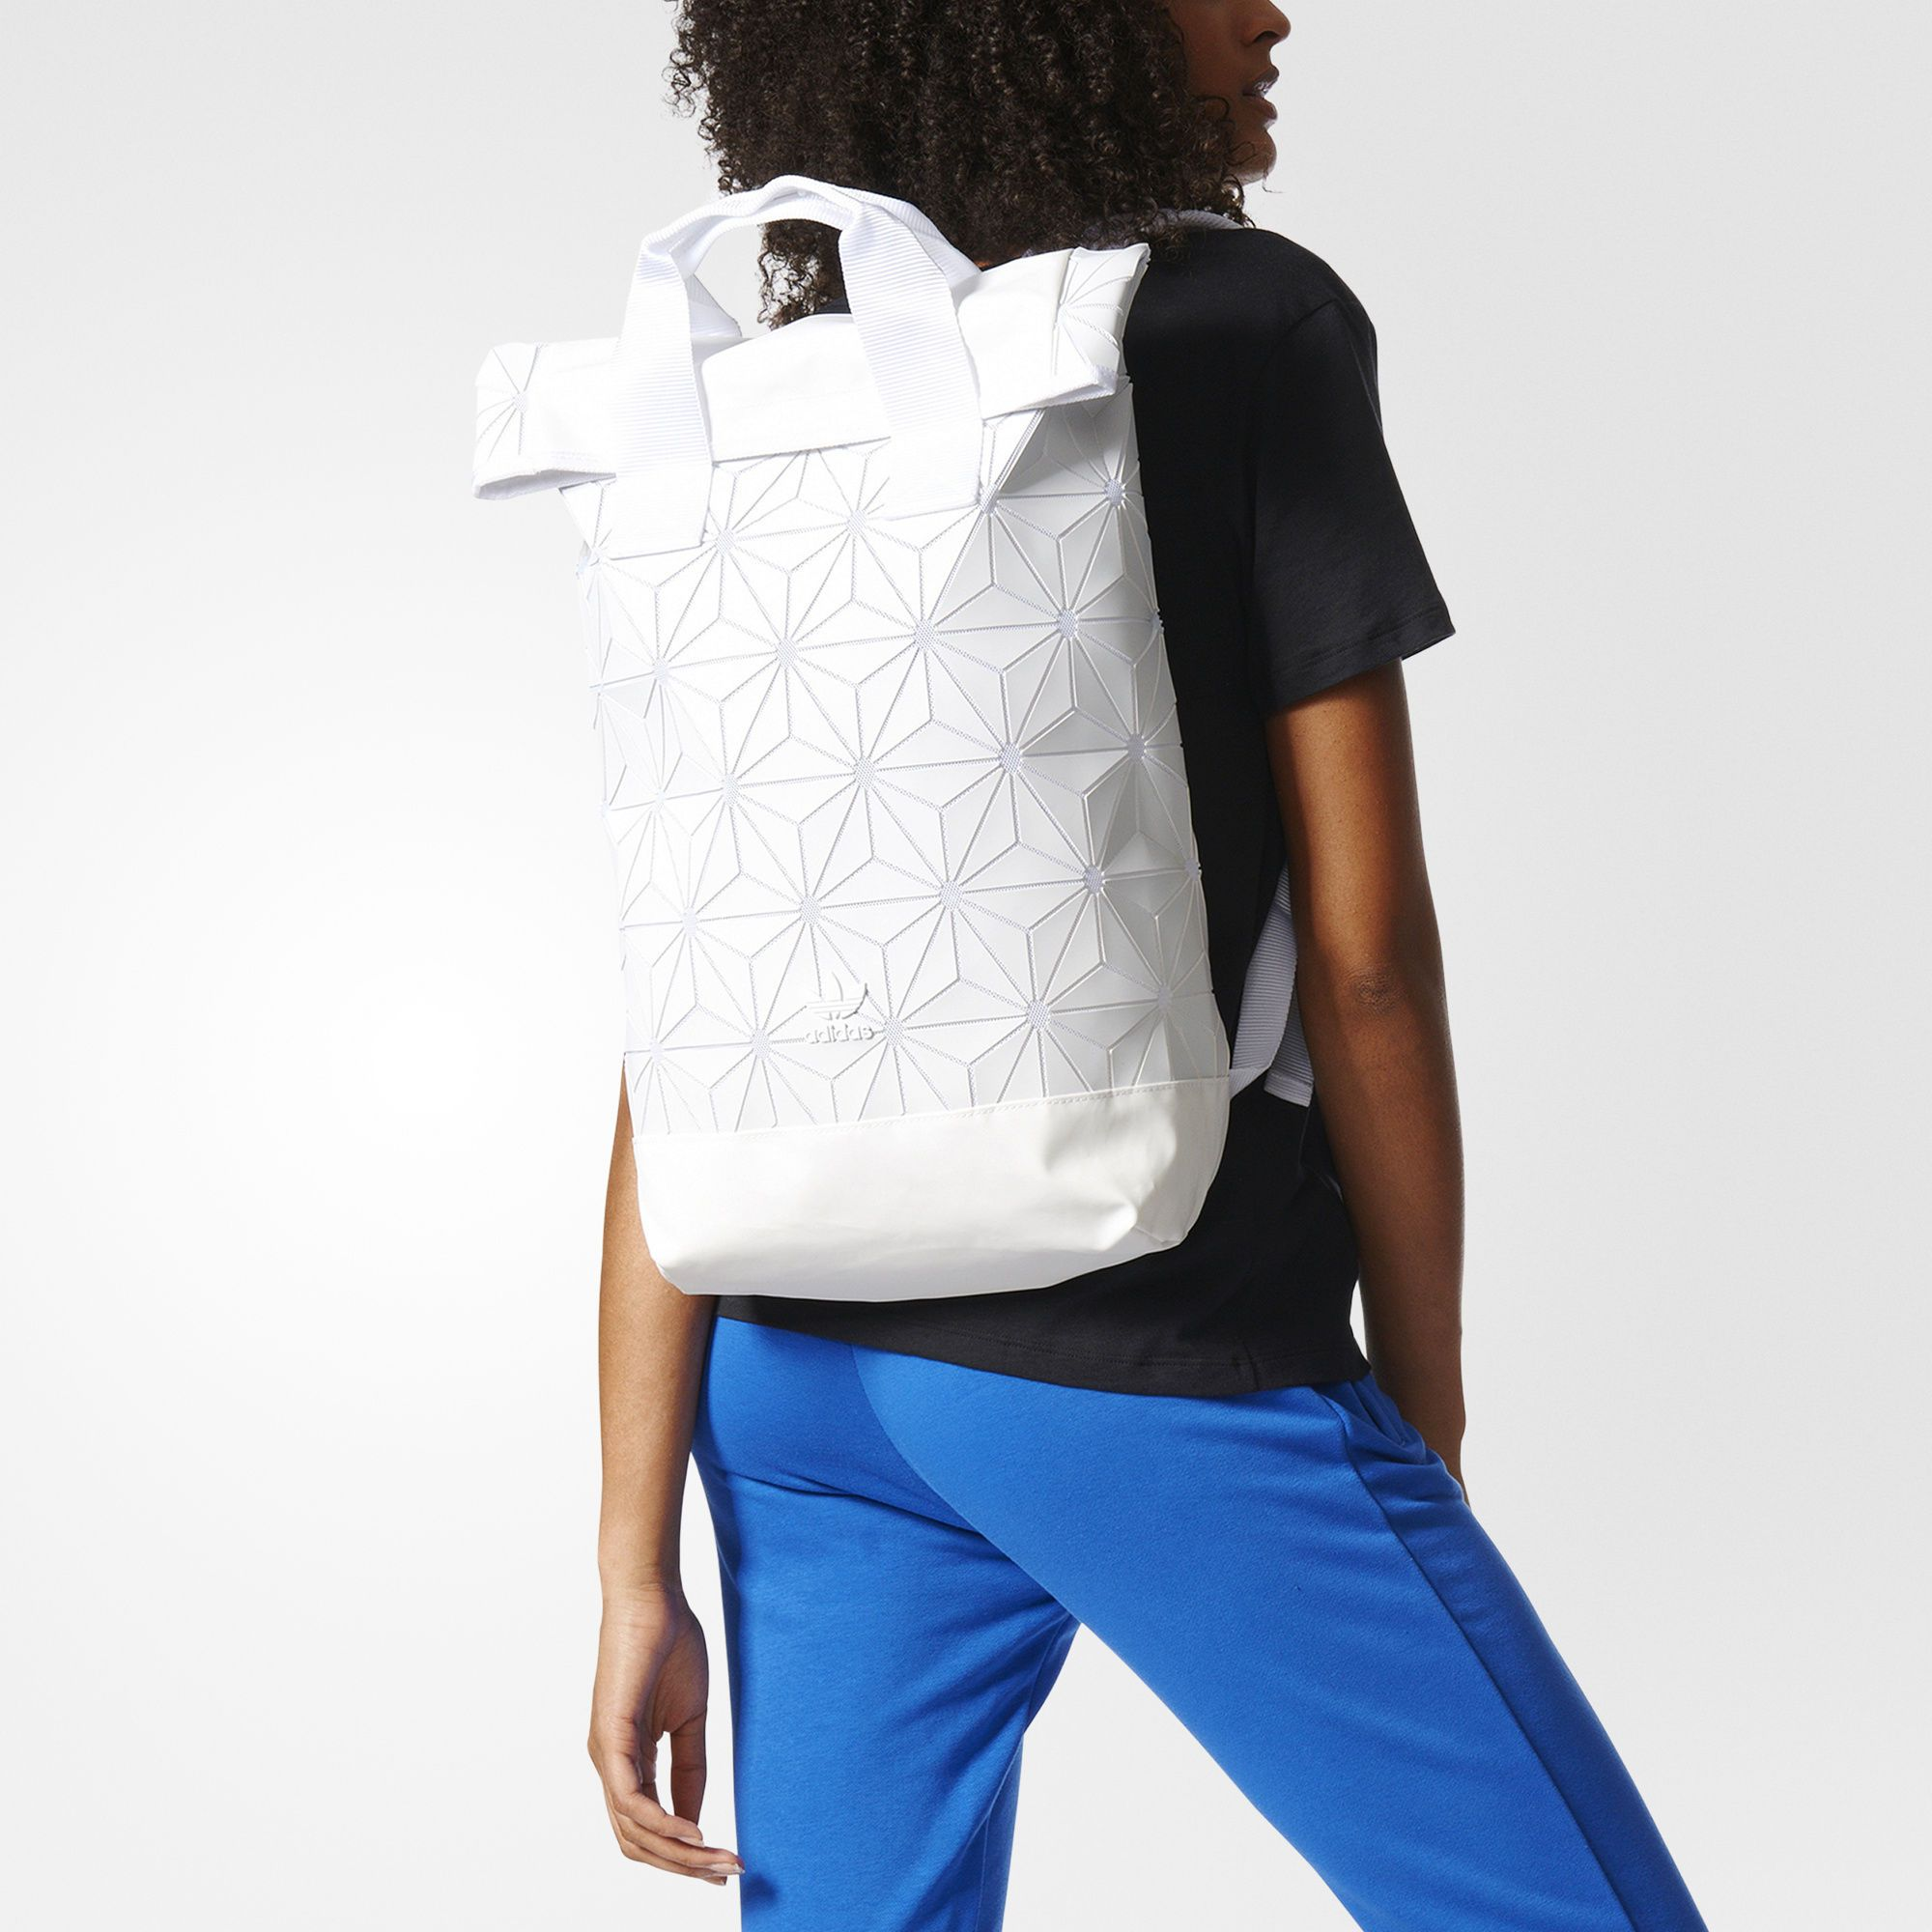 Adidas 3d Roll Top Mesh Backpack Crossover By Issey Miyake Mesh Backpack Backpacks Fashion